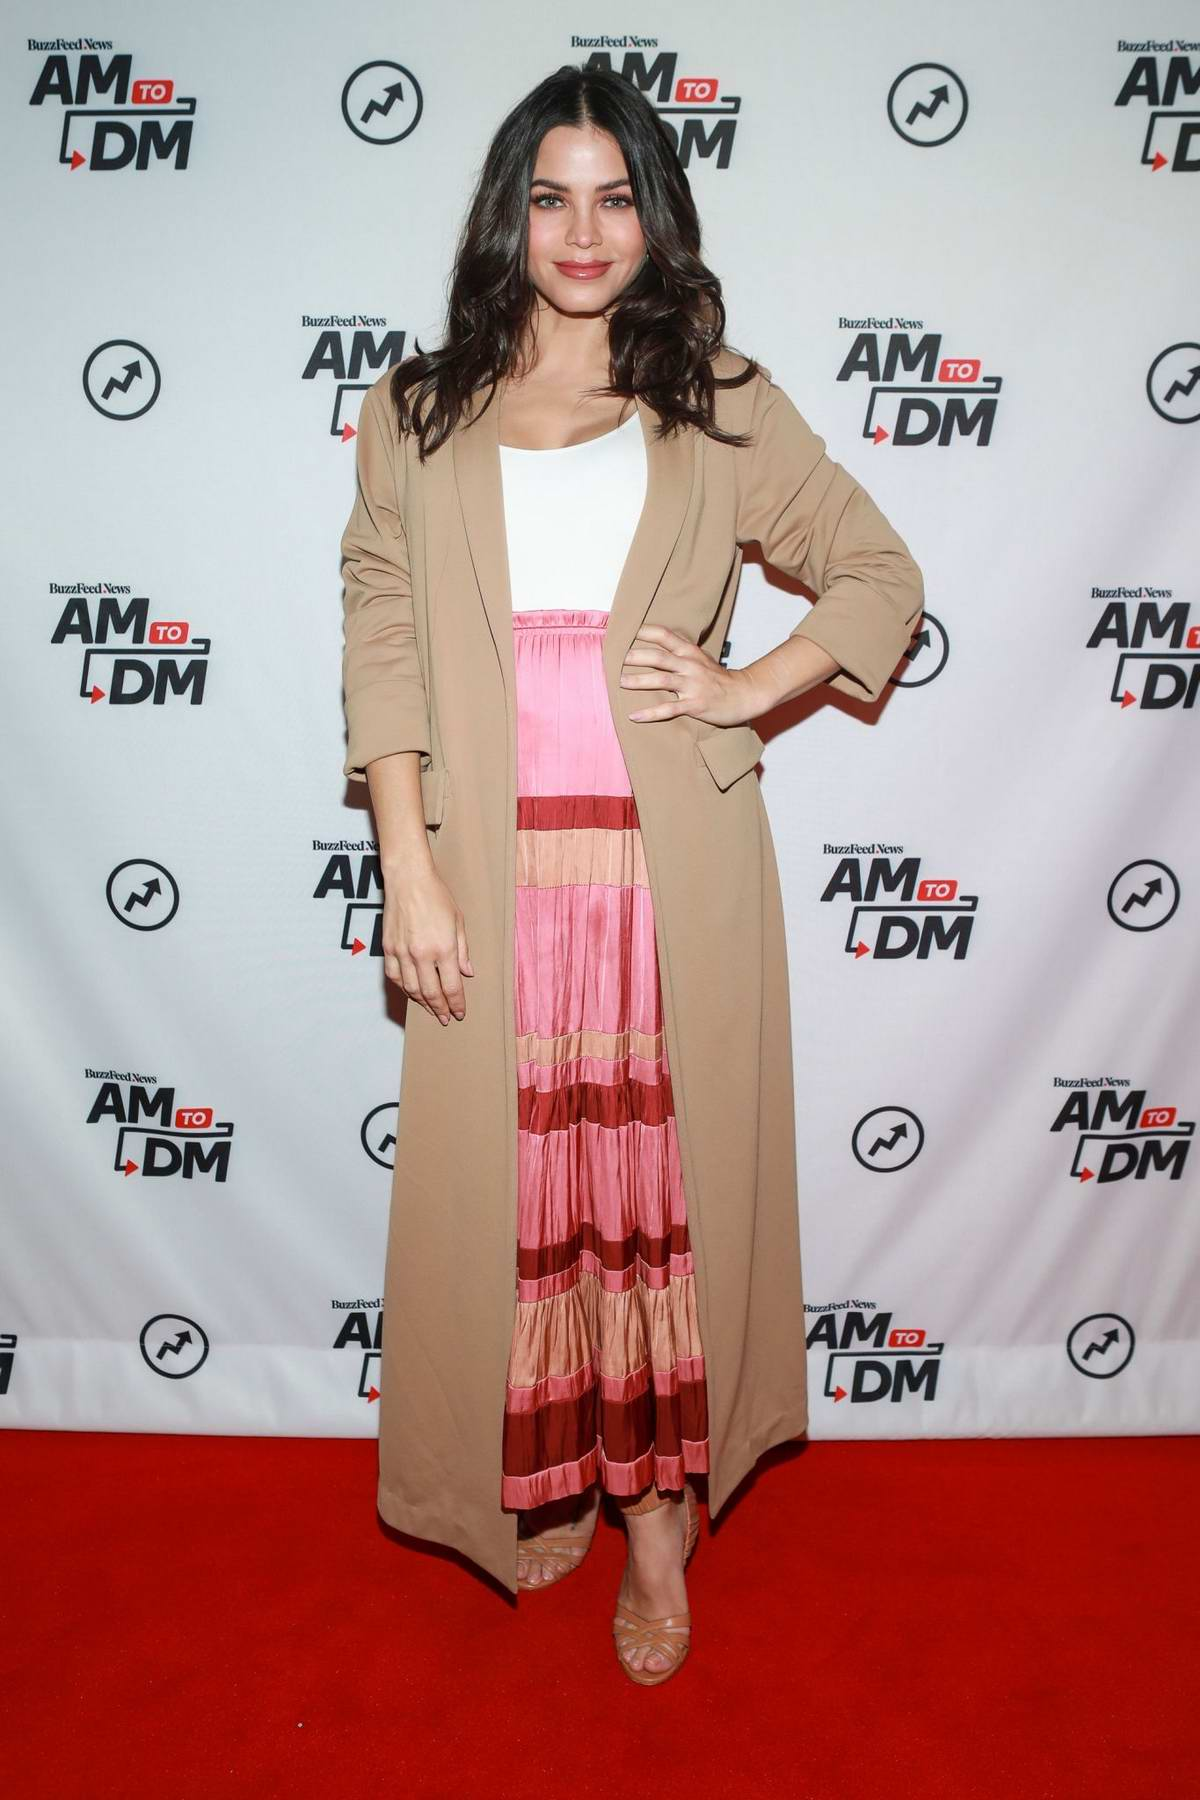 Jenna Dewan visits BuzzFeed's 'AM To DM' in New York City